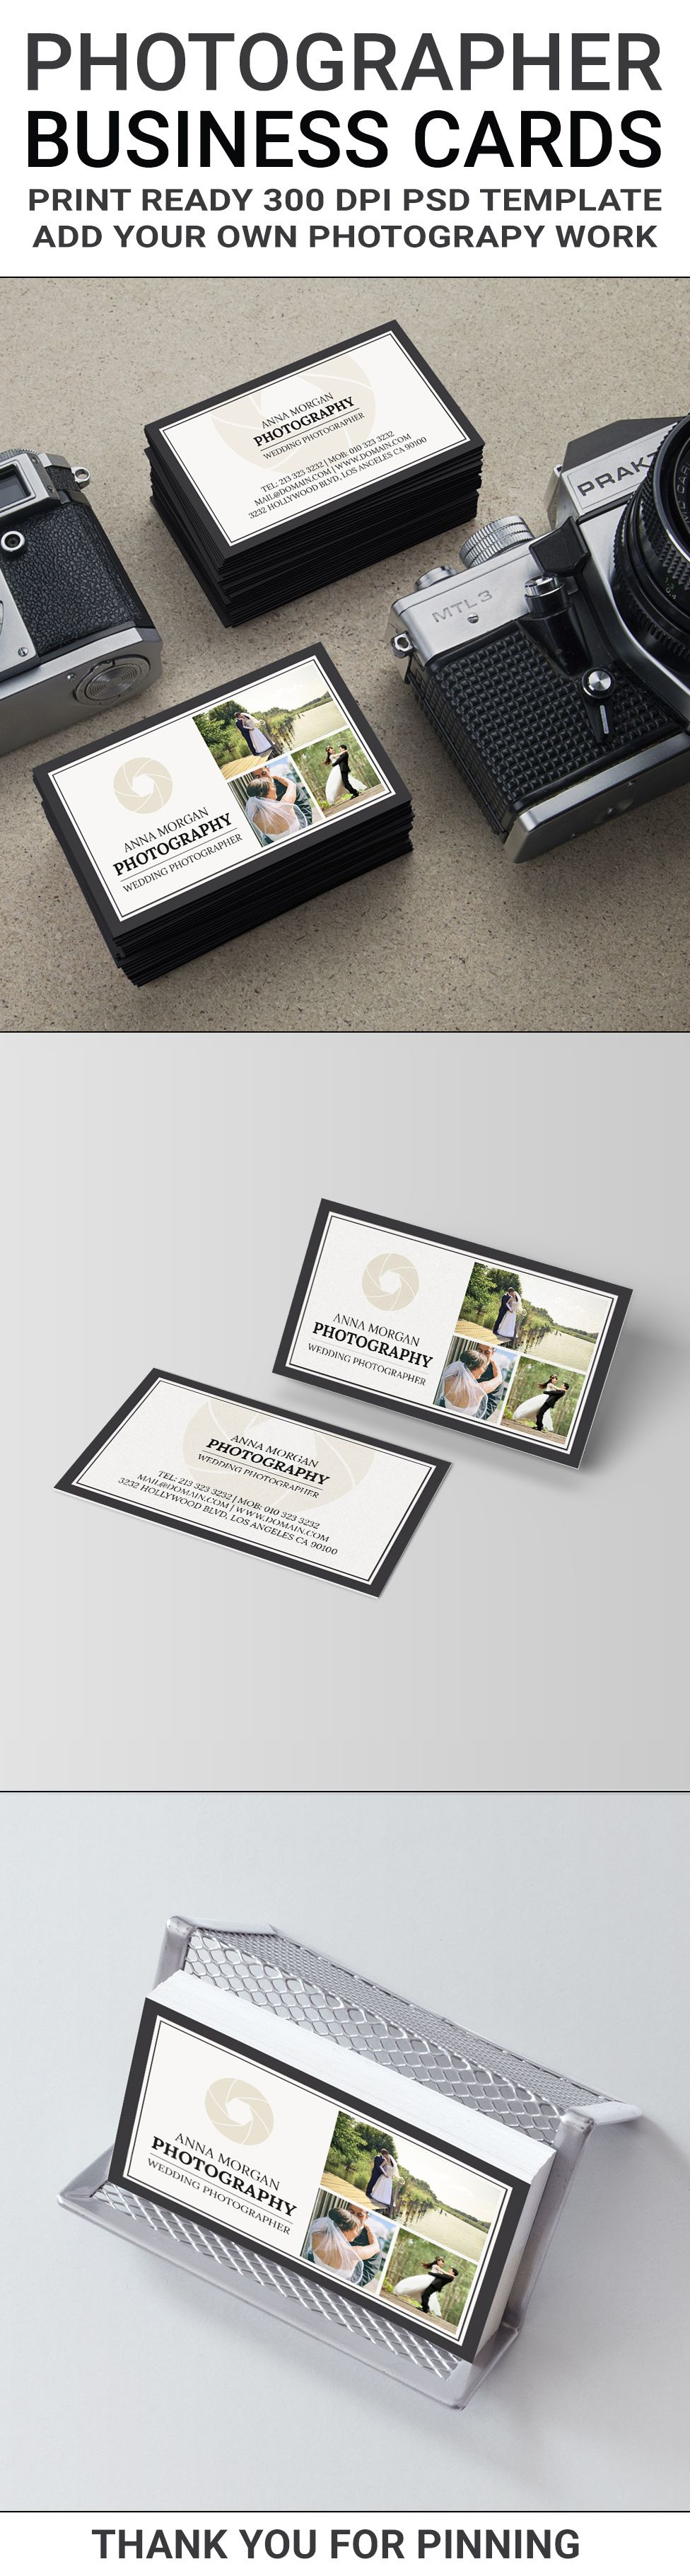 elegant photographer business cards template psd instant download